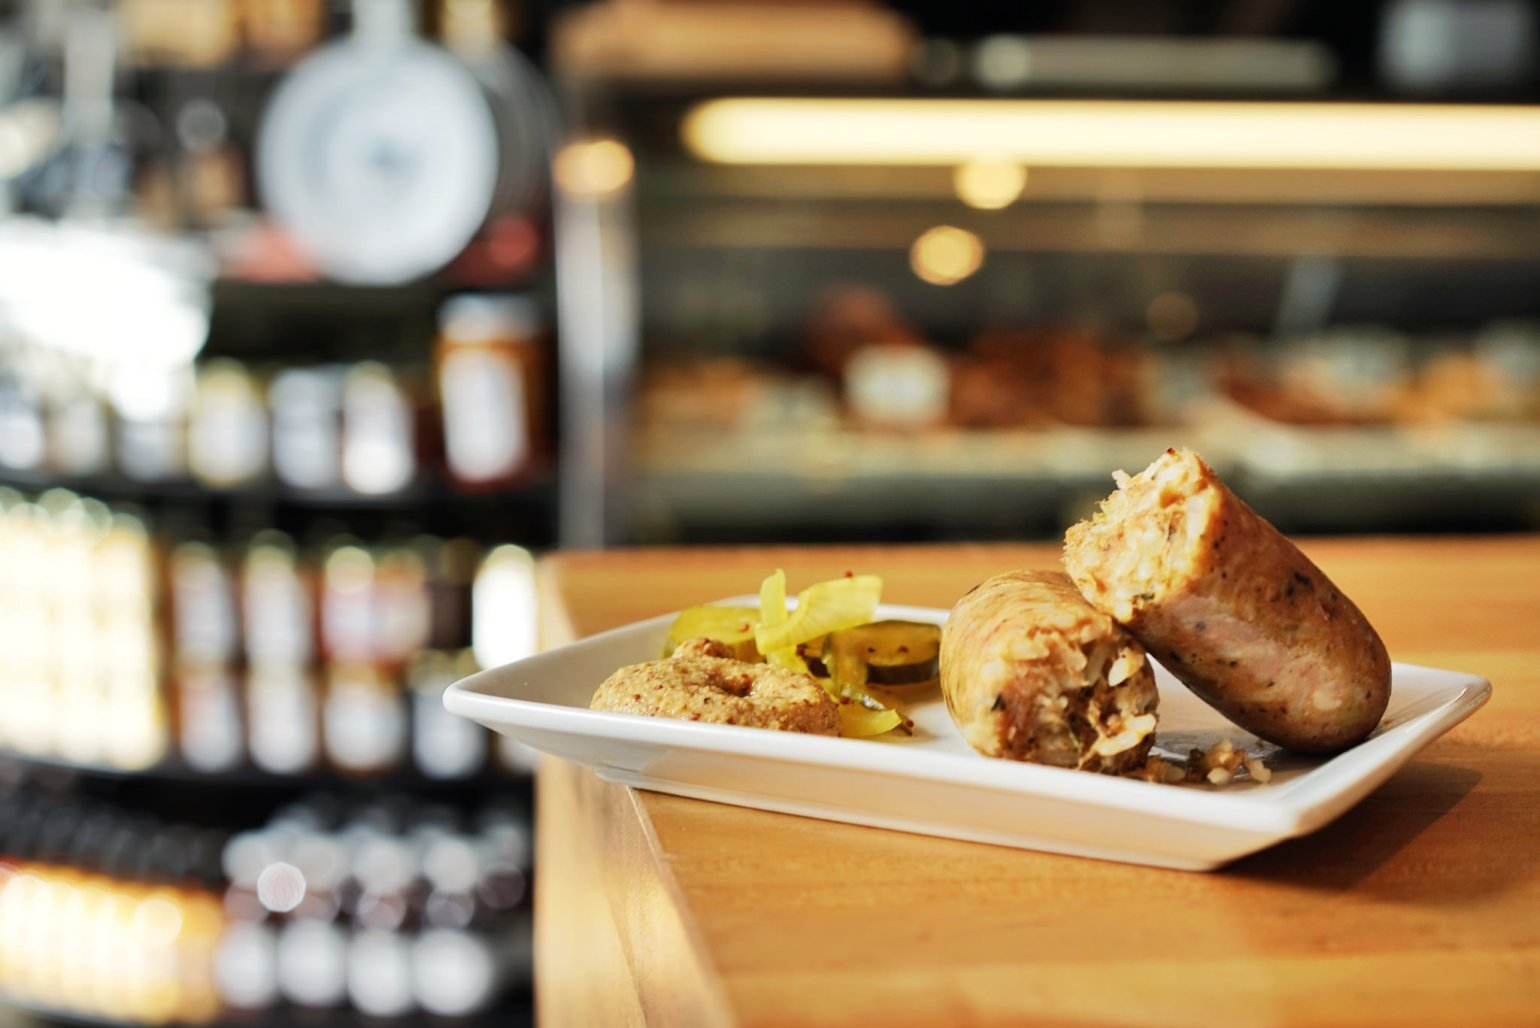 Chef Donald Link has two sister restaurants that sit side by side in the Warehouse District. Cochon is fine dining new Cajun cuisine, and around the corner is Cochon Butcher, which makes some of the most addictive sandwiches on Planet Earth. Try the Pig Mac, and the Muffuletta (served hot as standard, you can get it cold, too, just ask!). Link's Cajun roots from Lafayette are on display with his delicious boudin plate. They also sell boudin and other cajun charcuterie to order at the butcher counter!